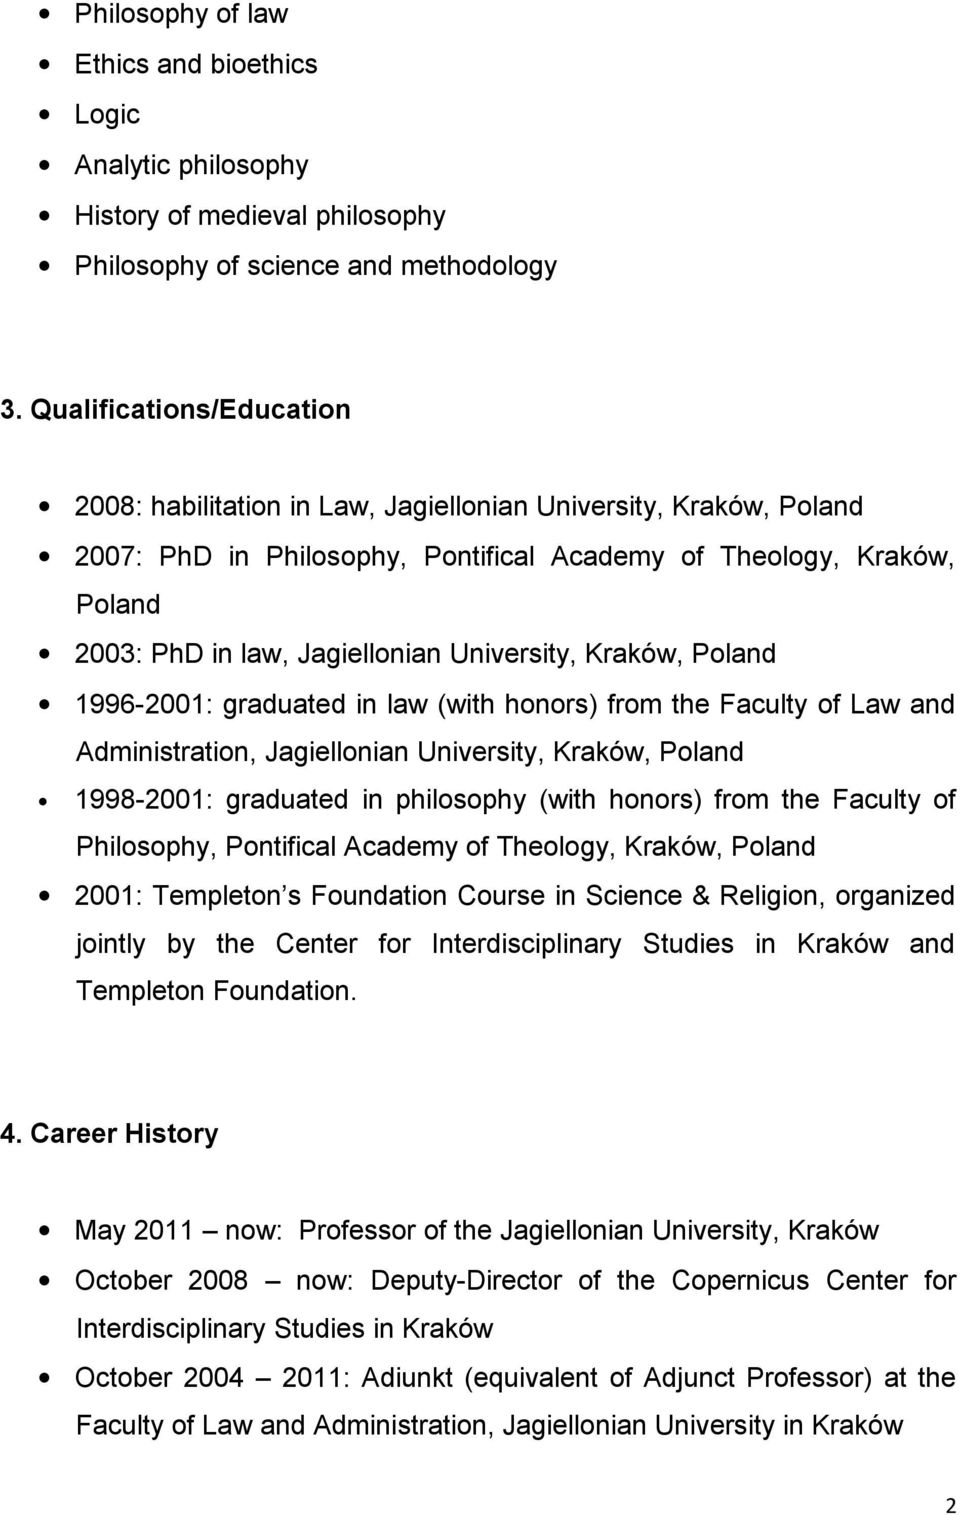 University, Kraków, Poland 1996-2001: graduated in law (with honors) from the Faculty of Law and Administration, Jagiellonian University, Kraków, Poland 1998-2001: graduated in philosophy (with